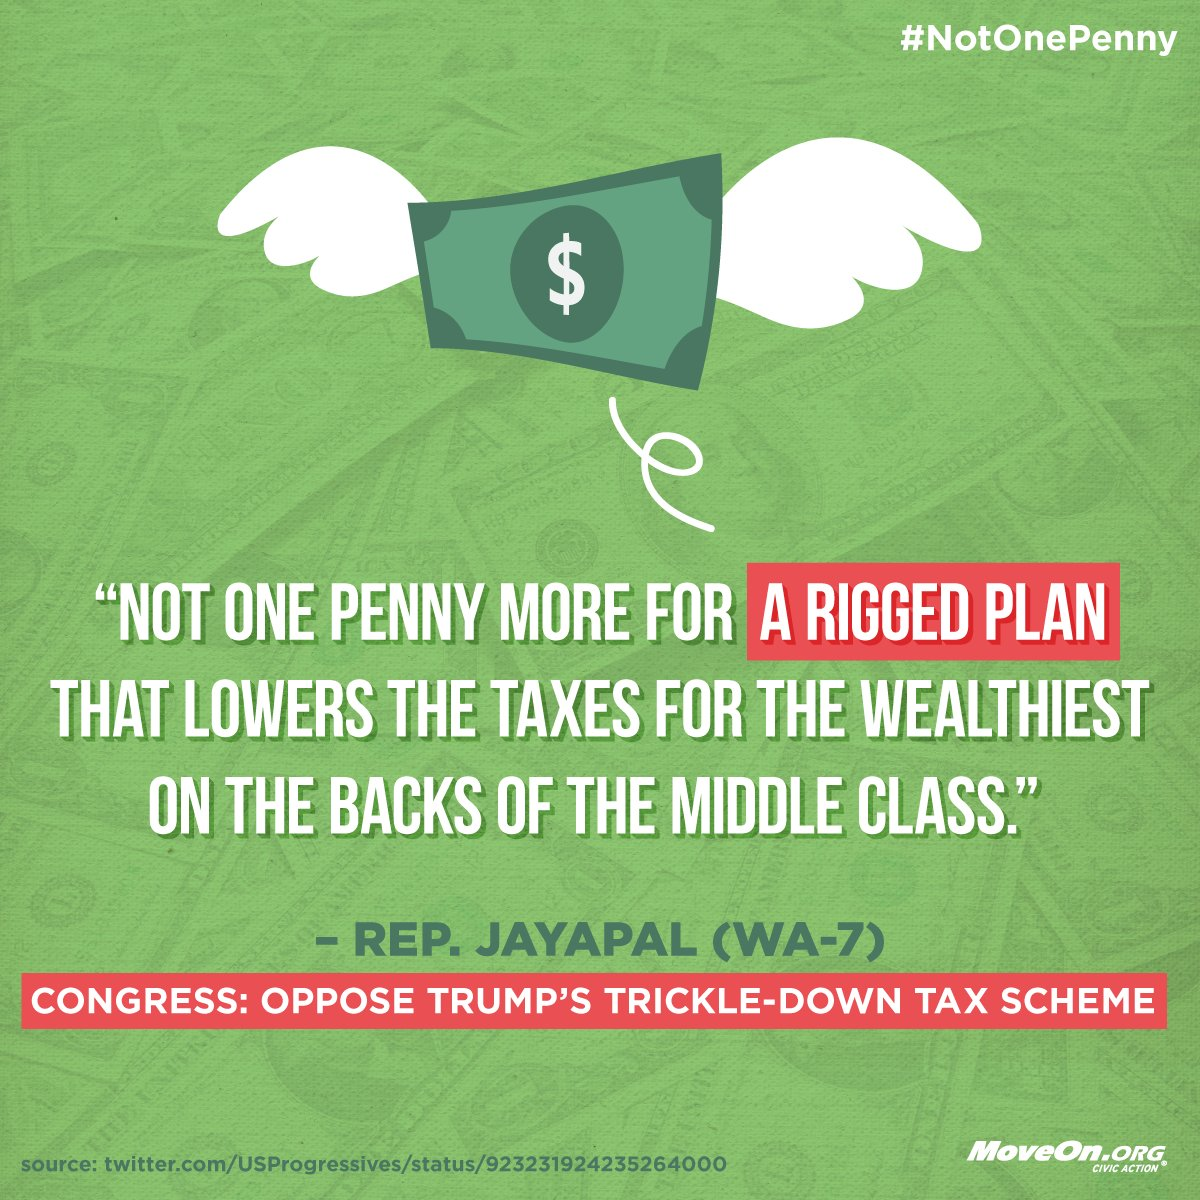 #TrumpTaxPlan is a giveaway to super wealthy & corporations. Congress, oppose this trickle-down scheme. #NotOnePenny